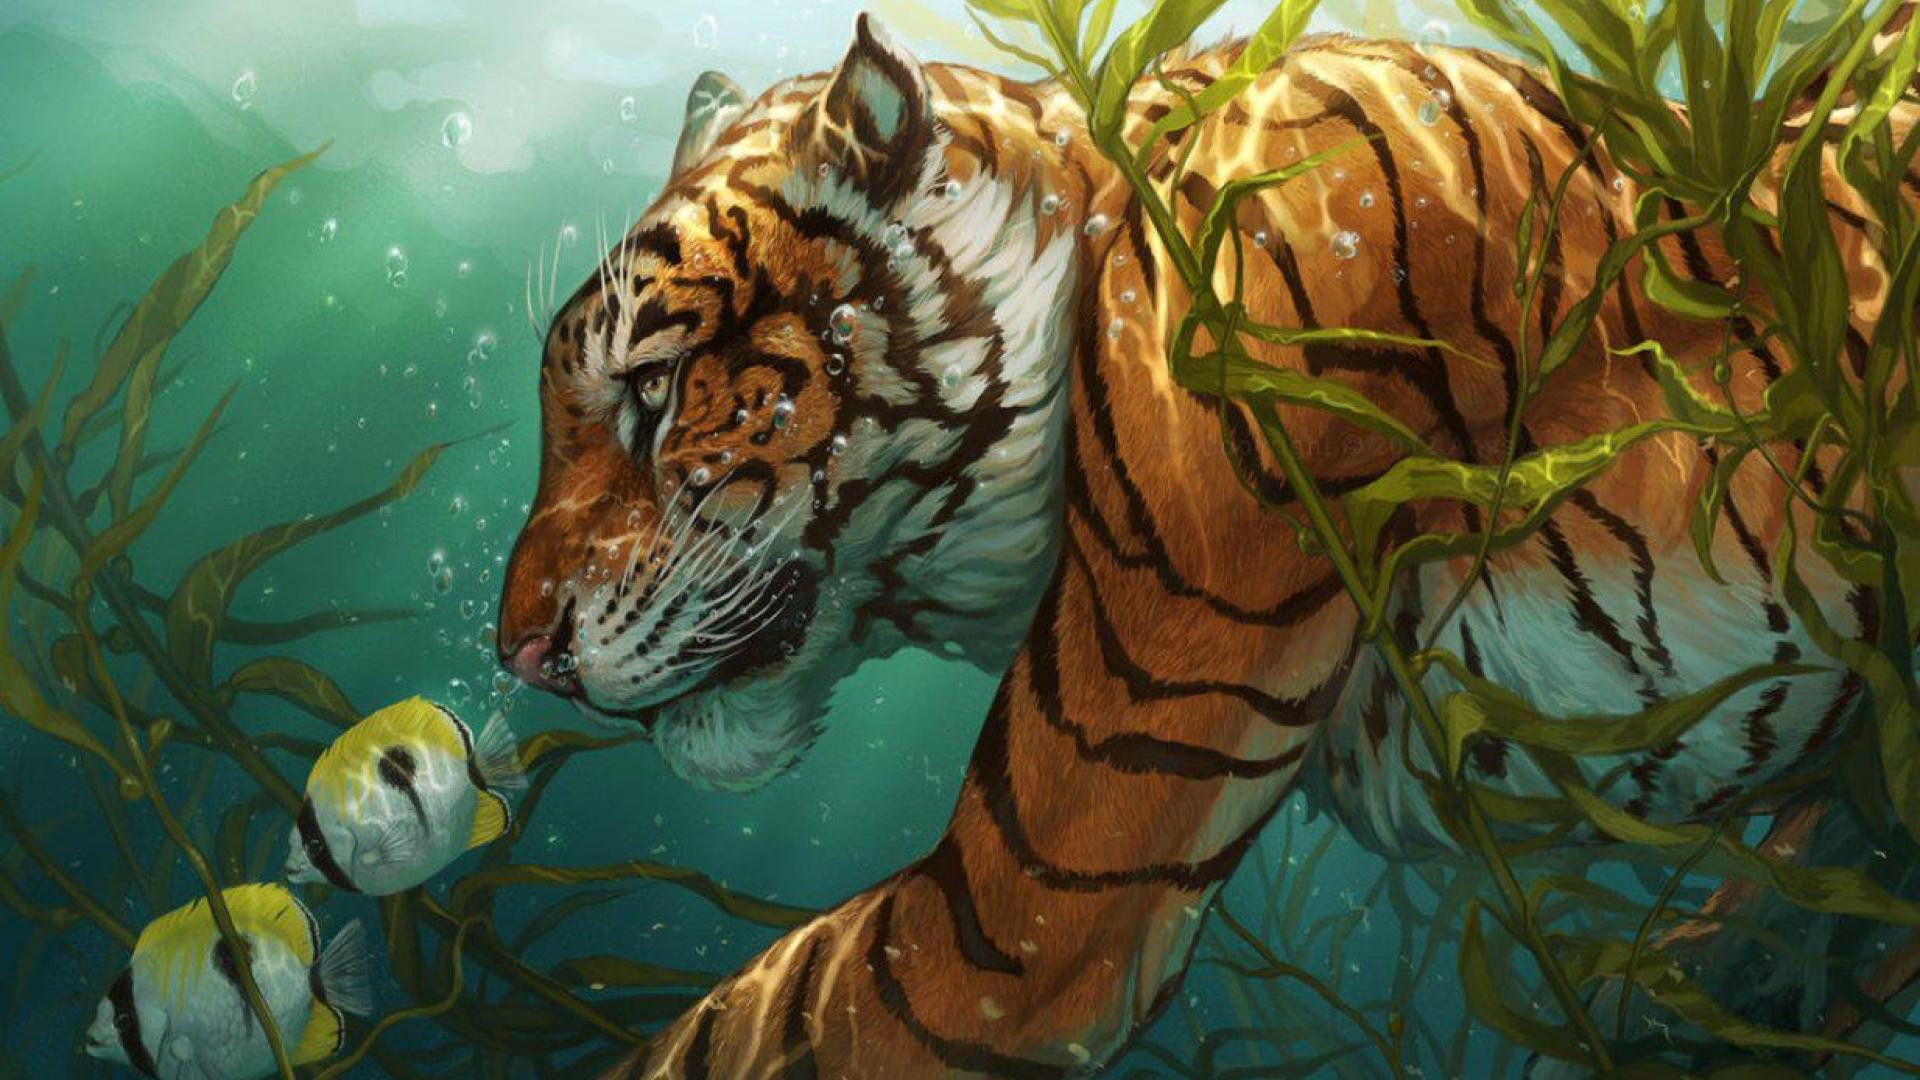 Jungle Animal Wallpaper Papel De Parede Ilustra 231 227 O Animais Obra De Arte Tigre